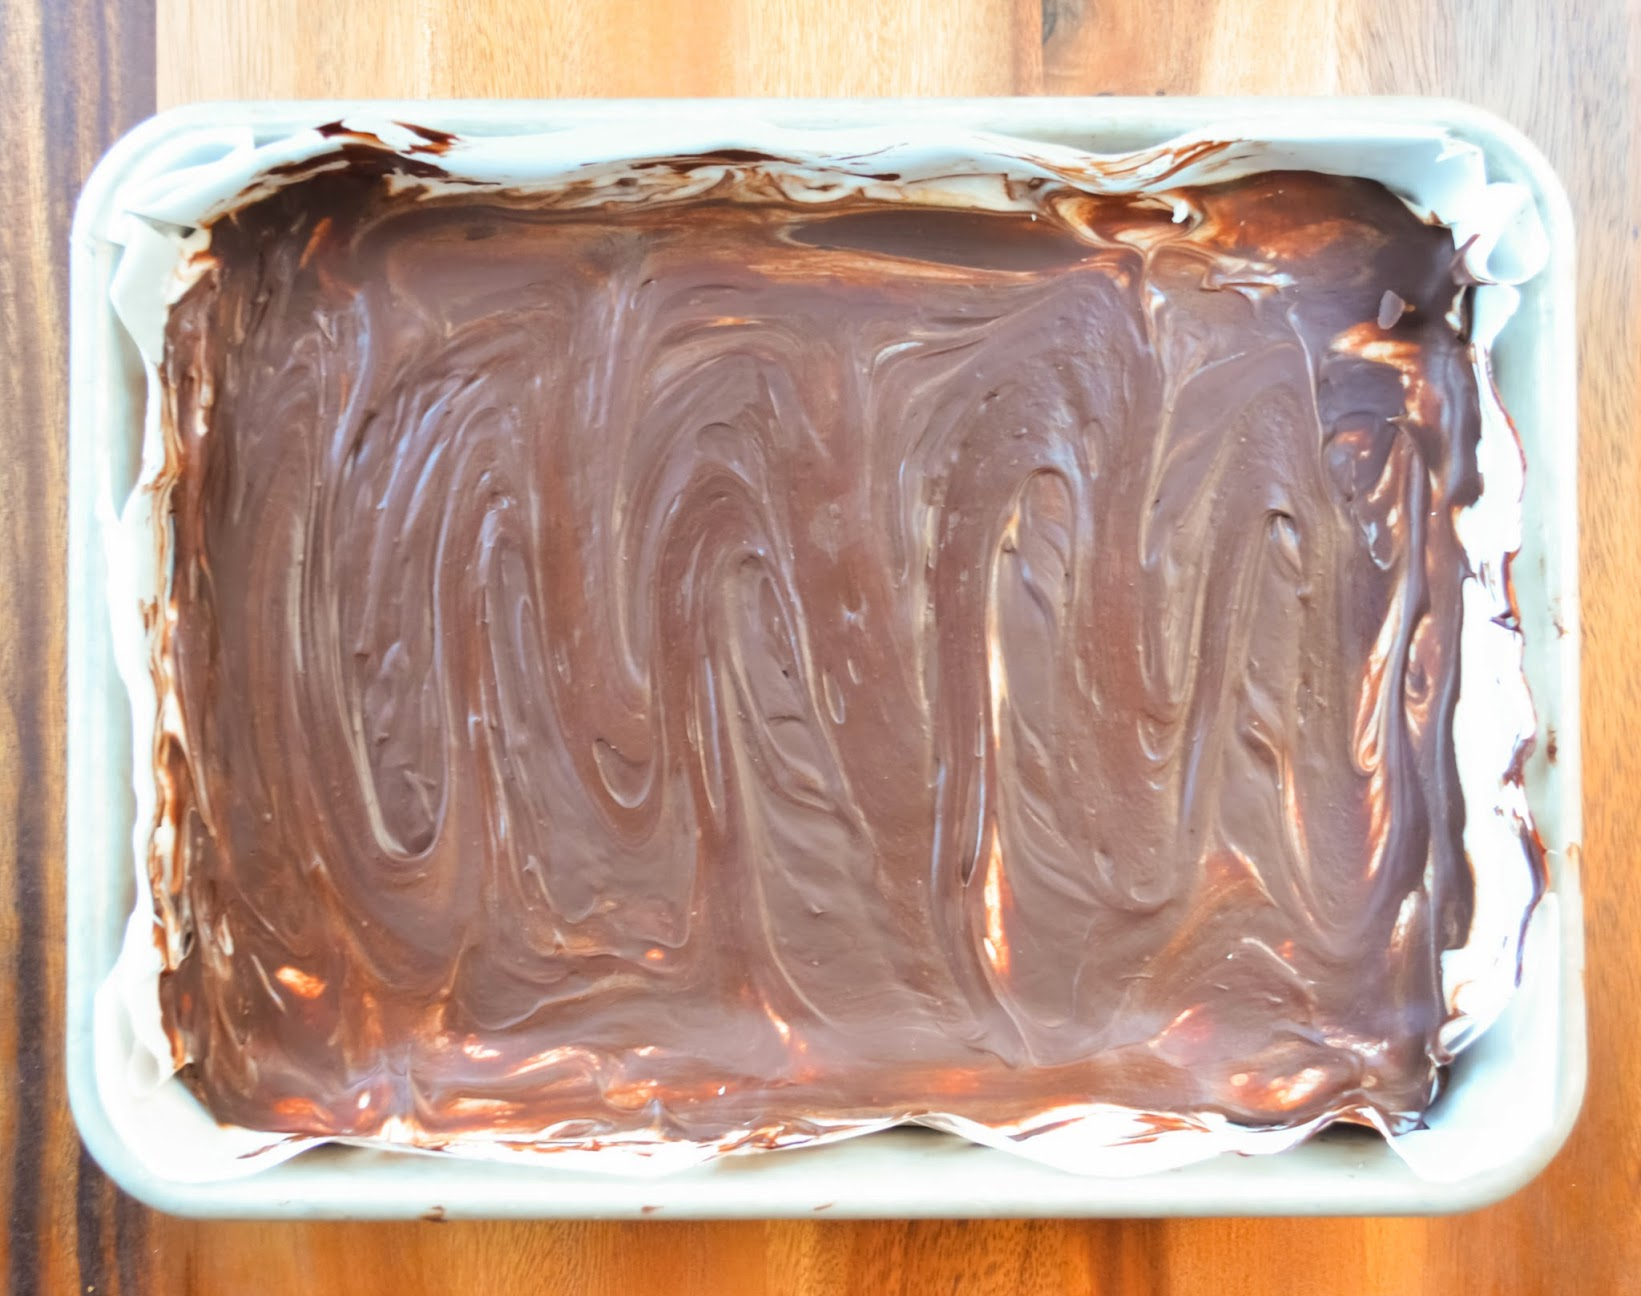 Creme-De-Menthe-Fudge-Brownies-Spread-Chocolate.jpg